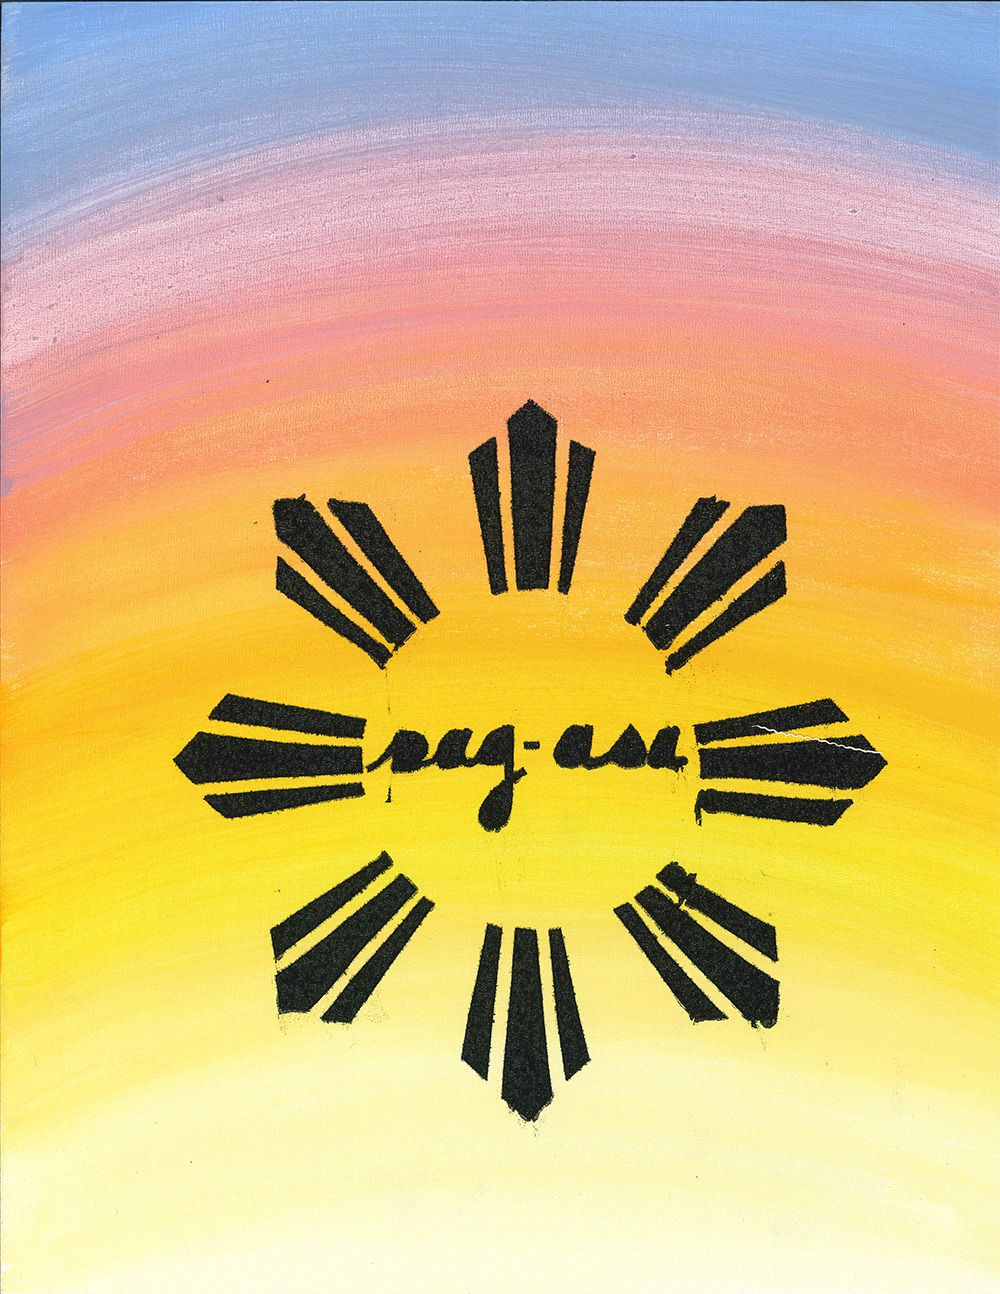 Sun from the Filipino flag that symbolizes hope.